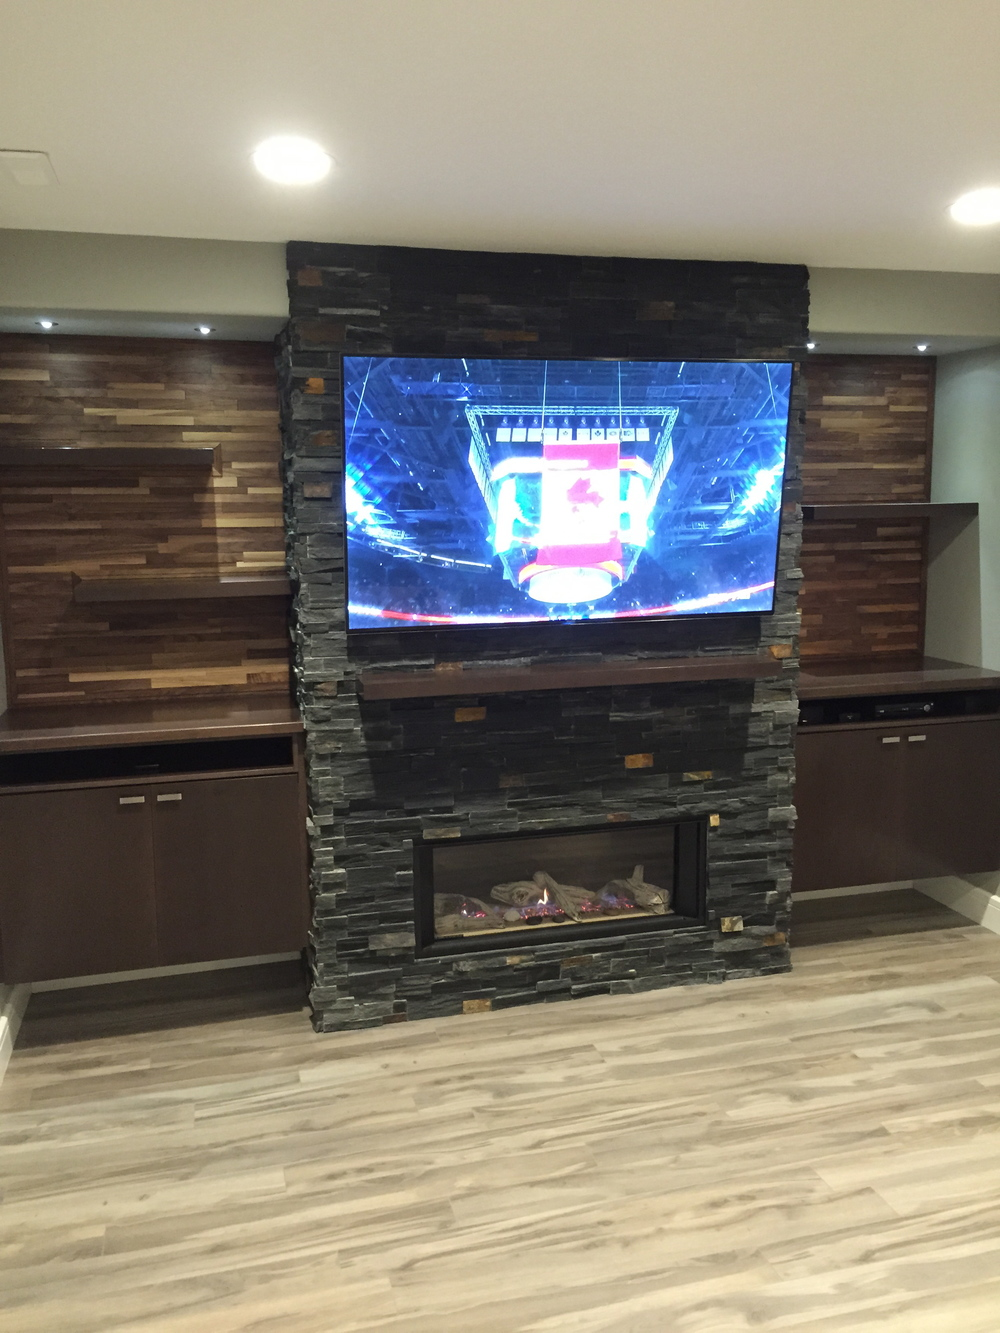 Basement renovation saskatoon, fireplace, flooring, custom shelves, trusted contractor